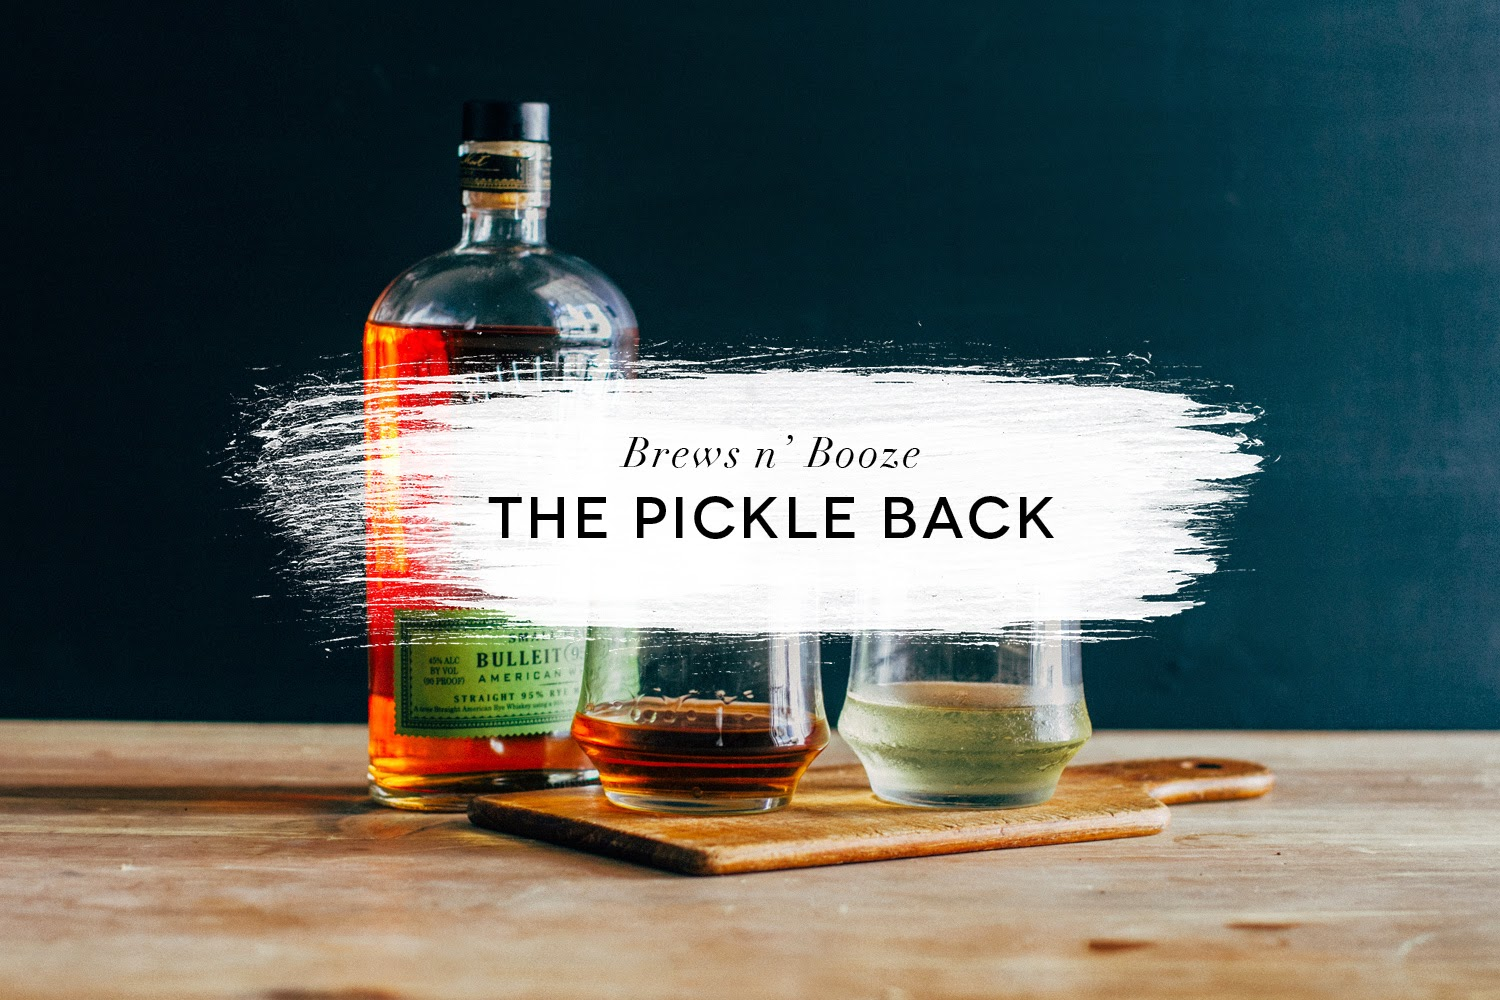 pickleback, whiskey, bulleit rye, rye whiskey, whiskey cocktail, cocktail, bulleit, los angeles whiskey